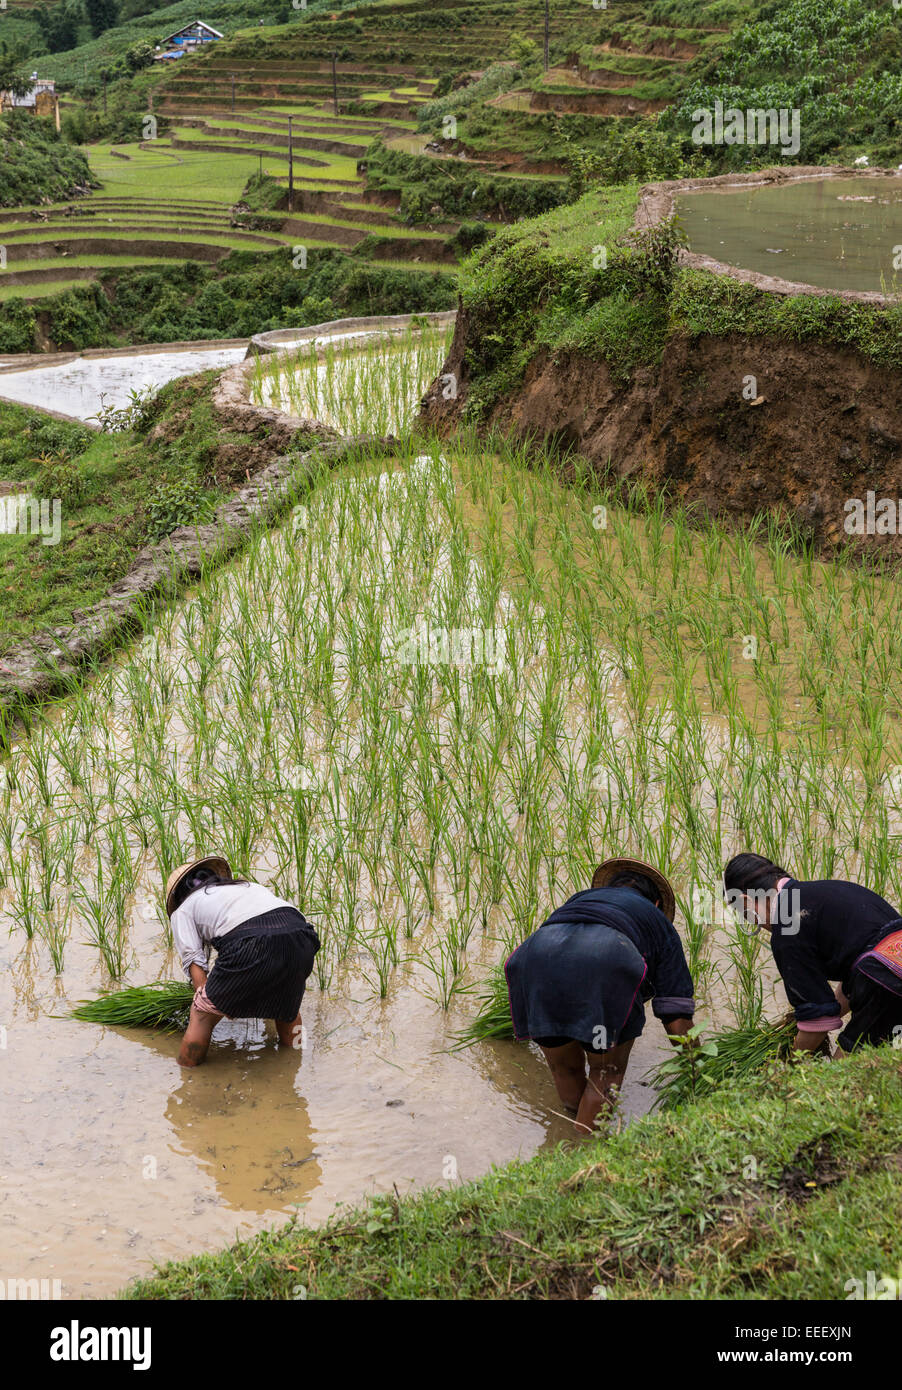 Black Hmong women planting seedlings in terraced rice paddy during rainy season, Cat Cat village, near Sapa northern - Stock Image